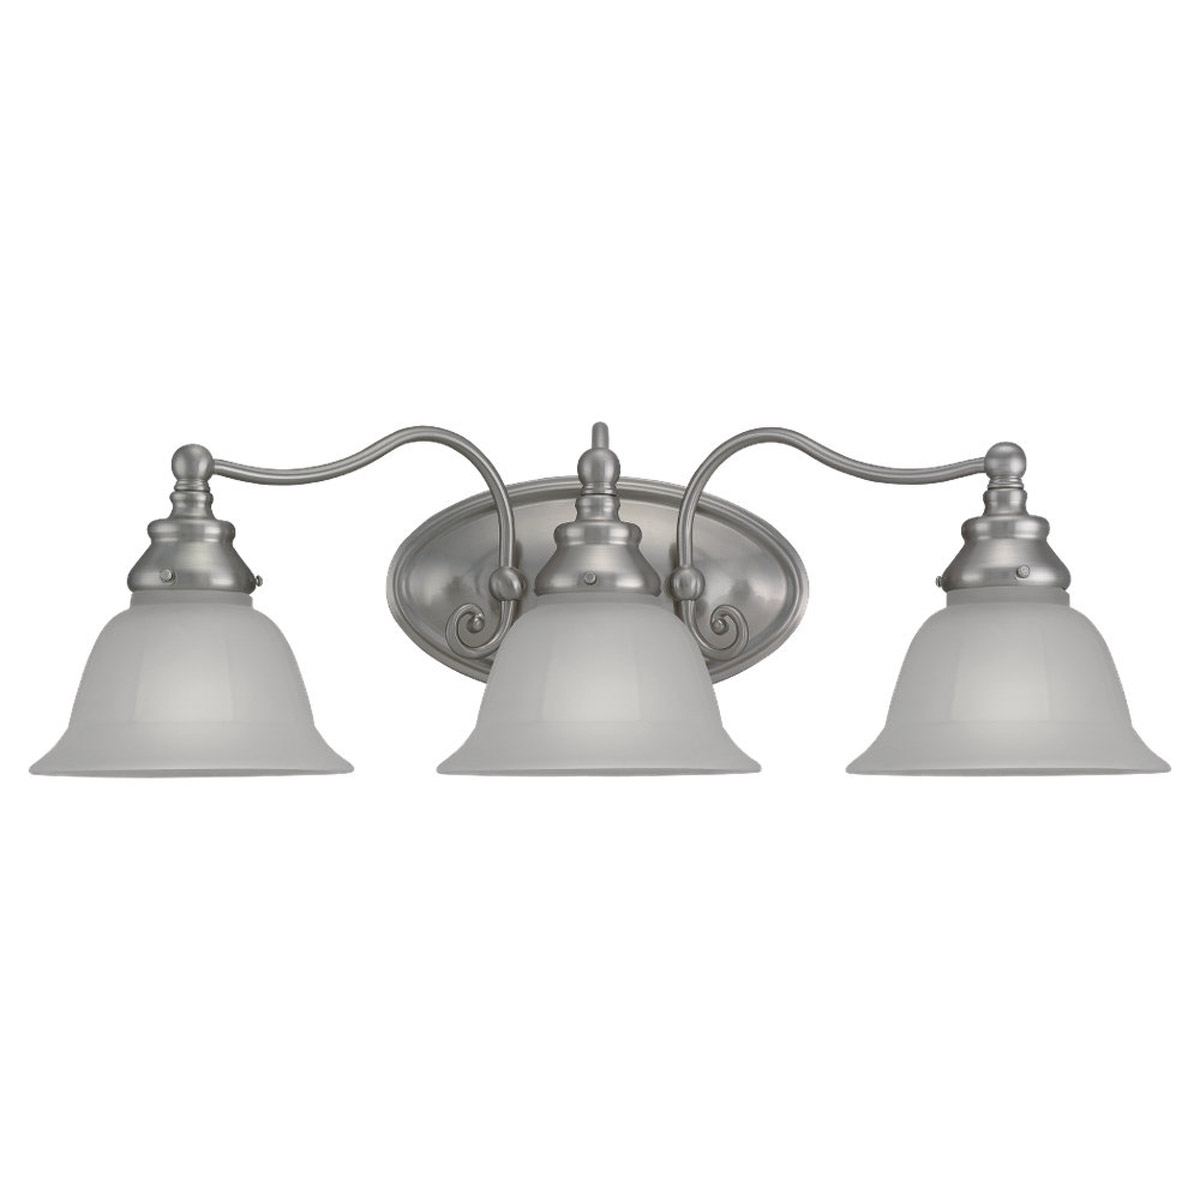 Sea Gull Lighting Canterbury 3 Light Bath Vanity in Brushed Nickel 49652BLE-962